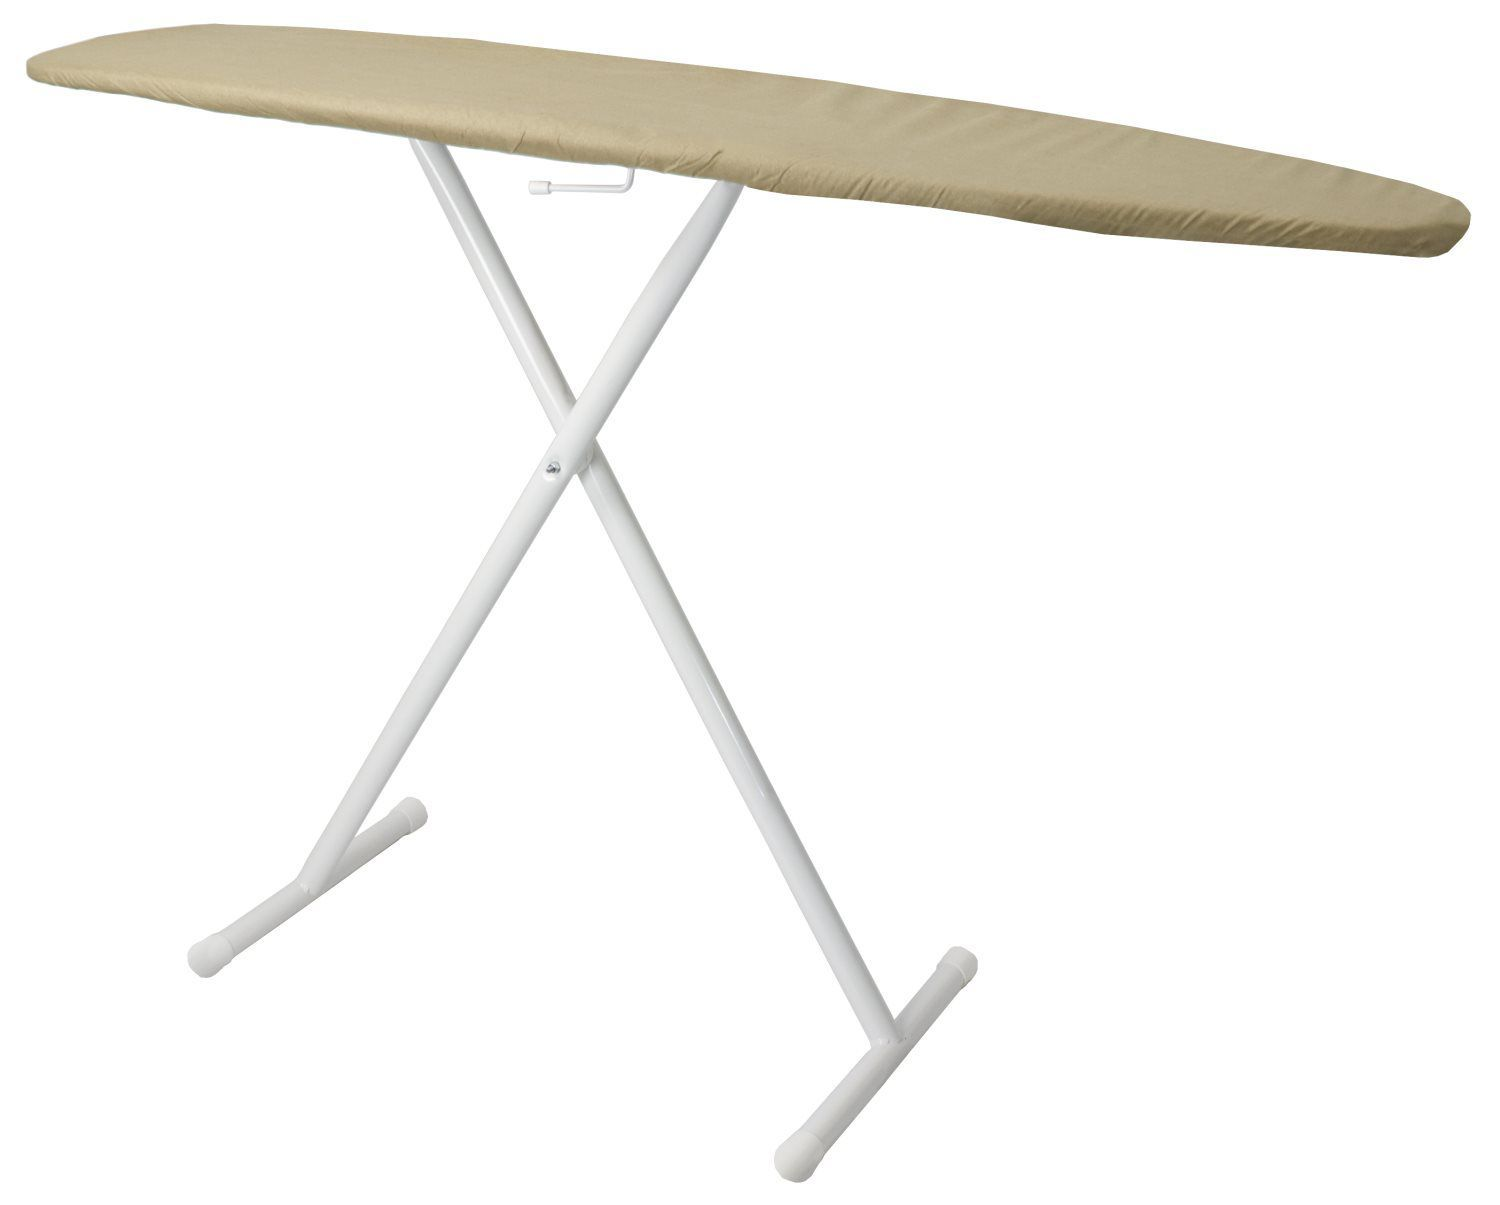 Select Ironing Board- Toast Cover